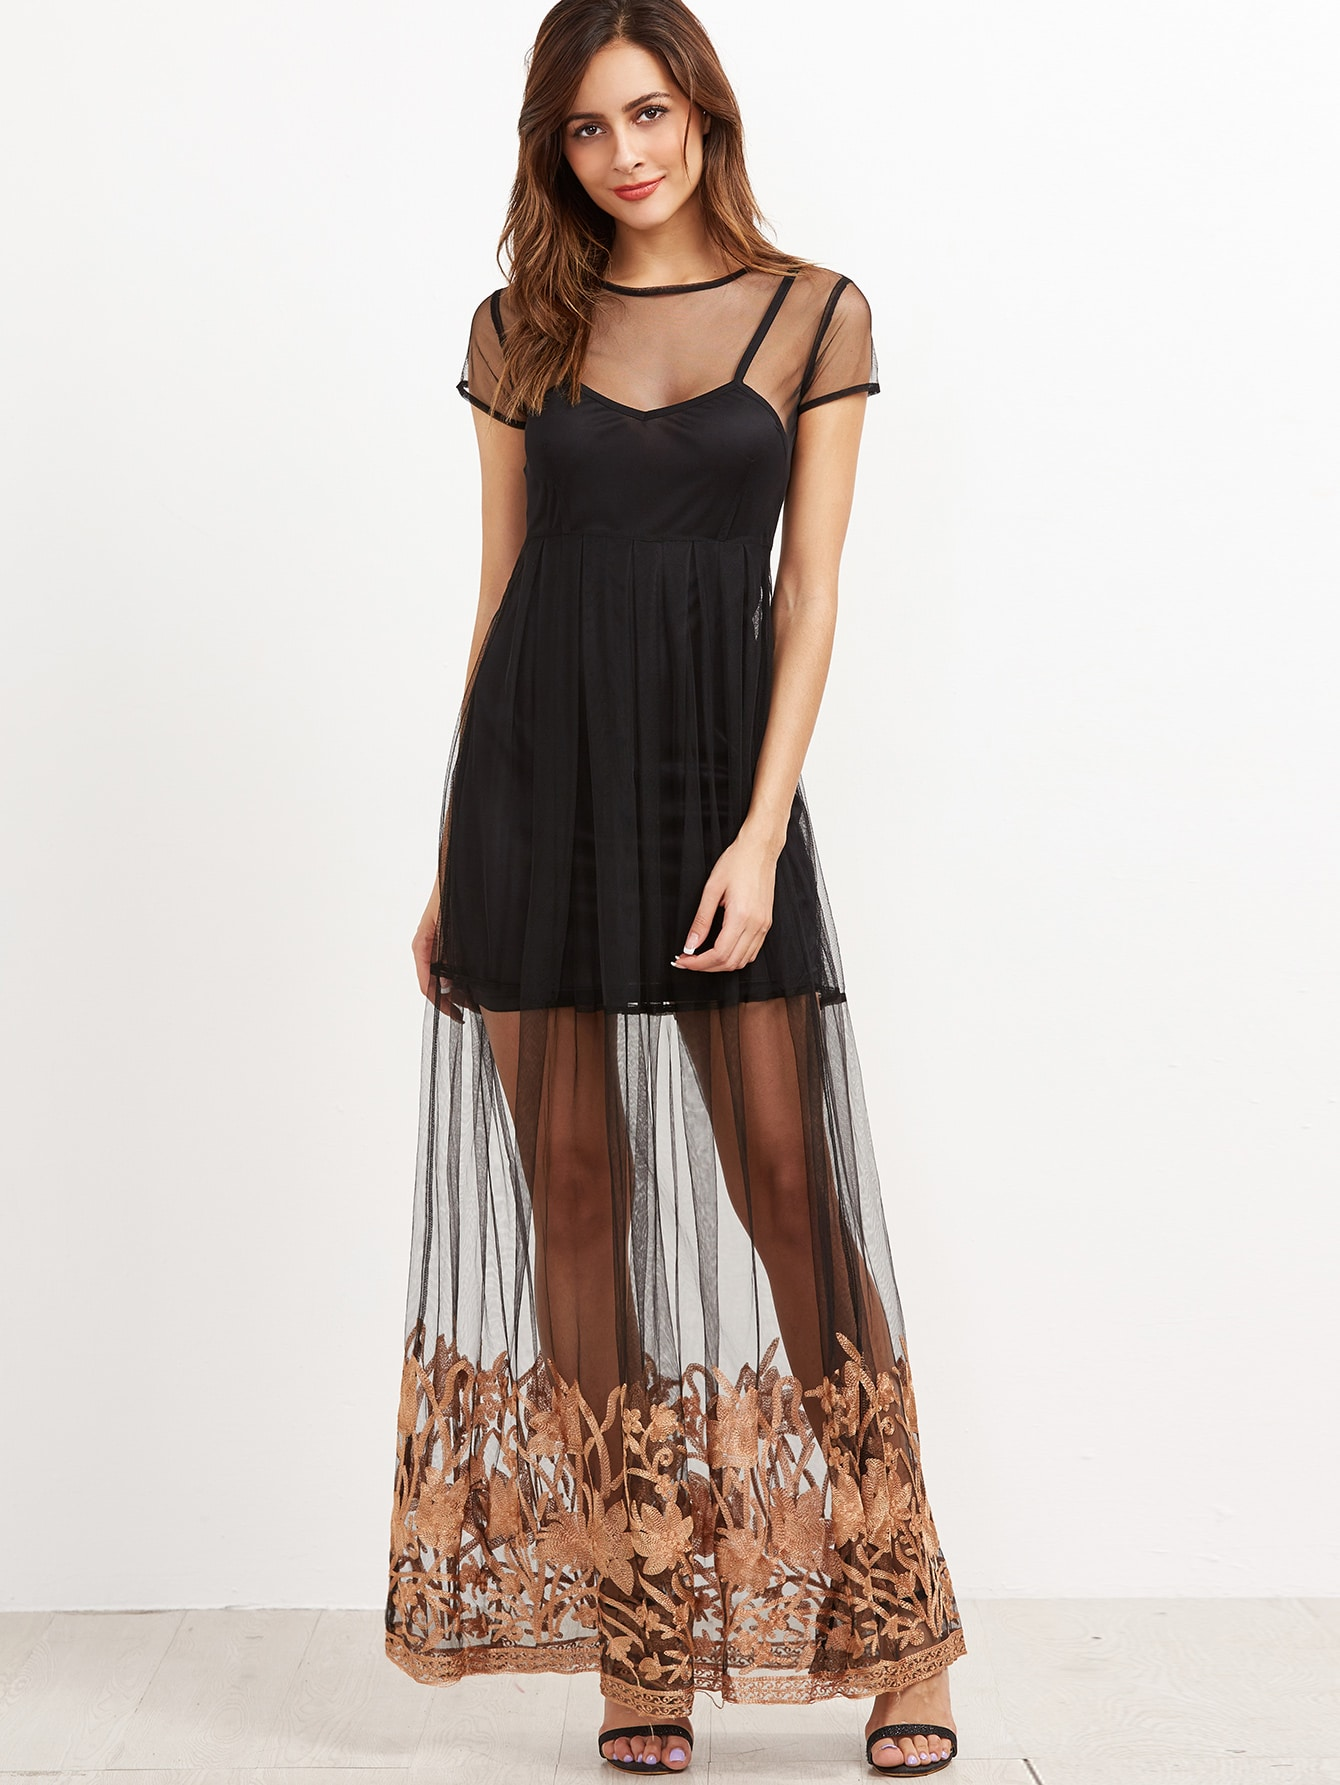 Black Embroidered Tape Sheer Dress With CamiBlack Embroidered Tape Sheer Dress With Cami<br><br>color: Black<br>size: L,M,S